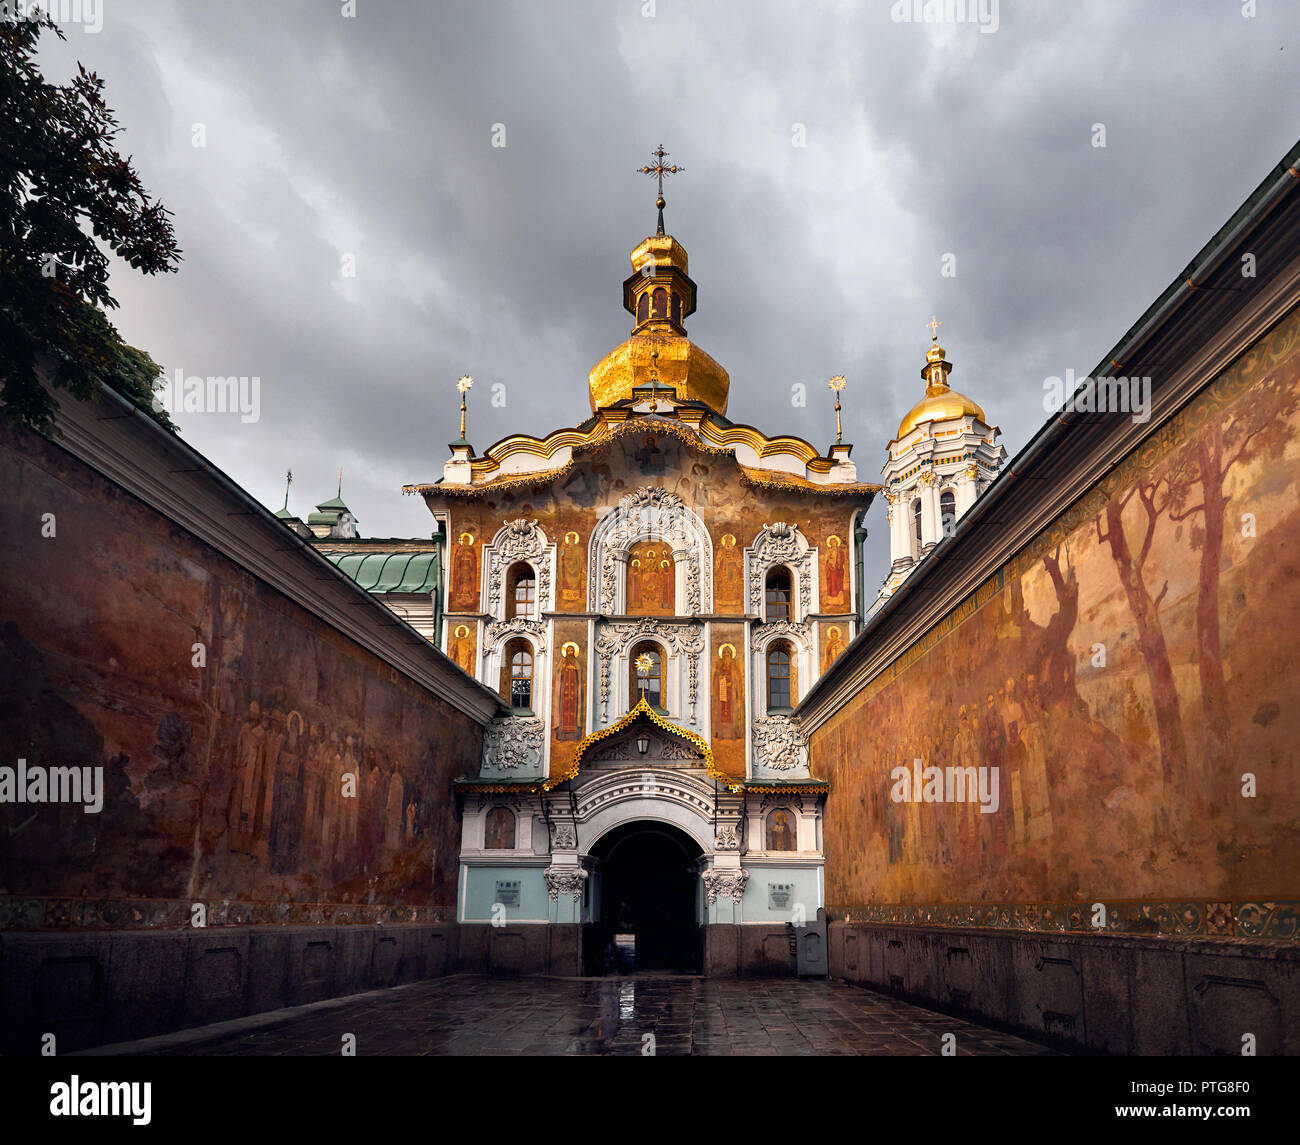 Old Church Gate of Kiev Pechersk Lavra. Old historical architecture in Kiev, Ukraine - Stock Image